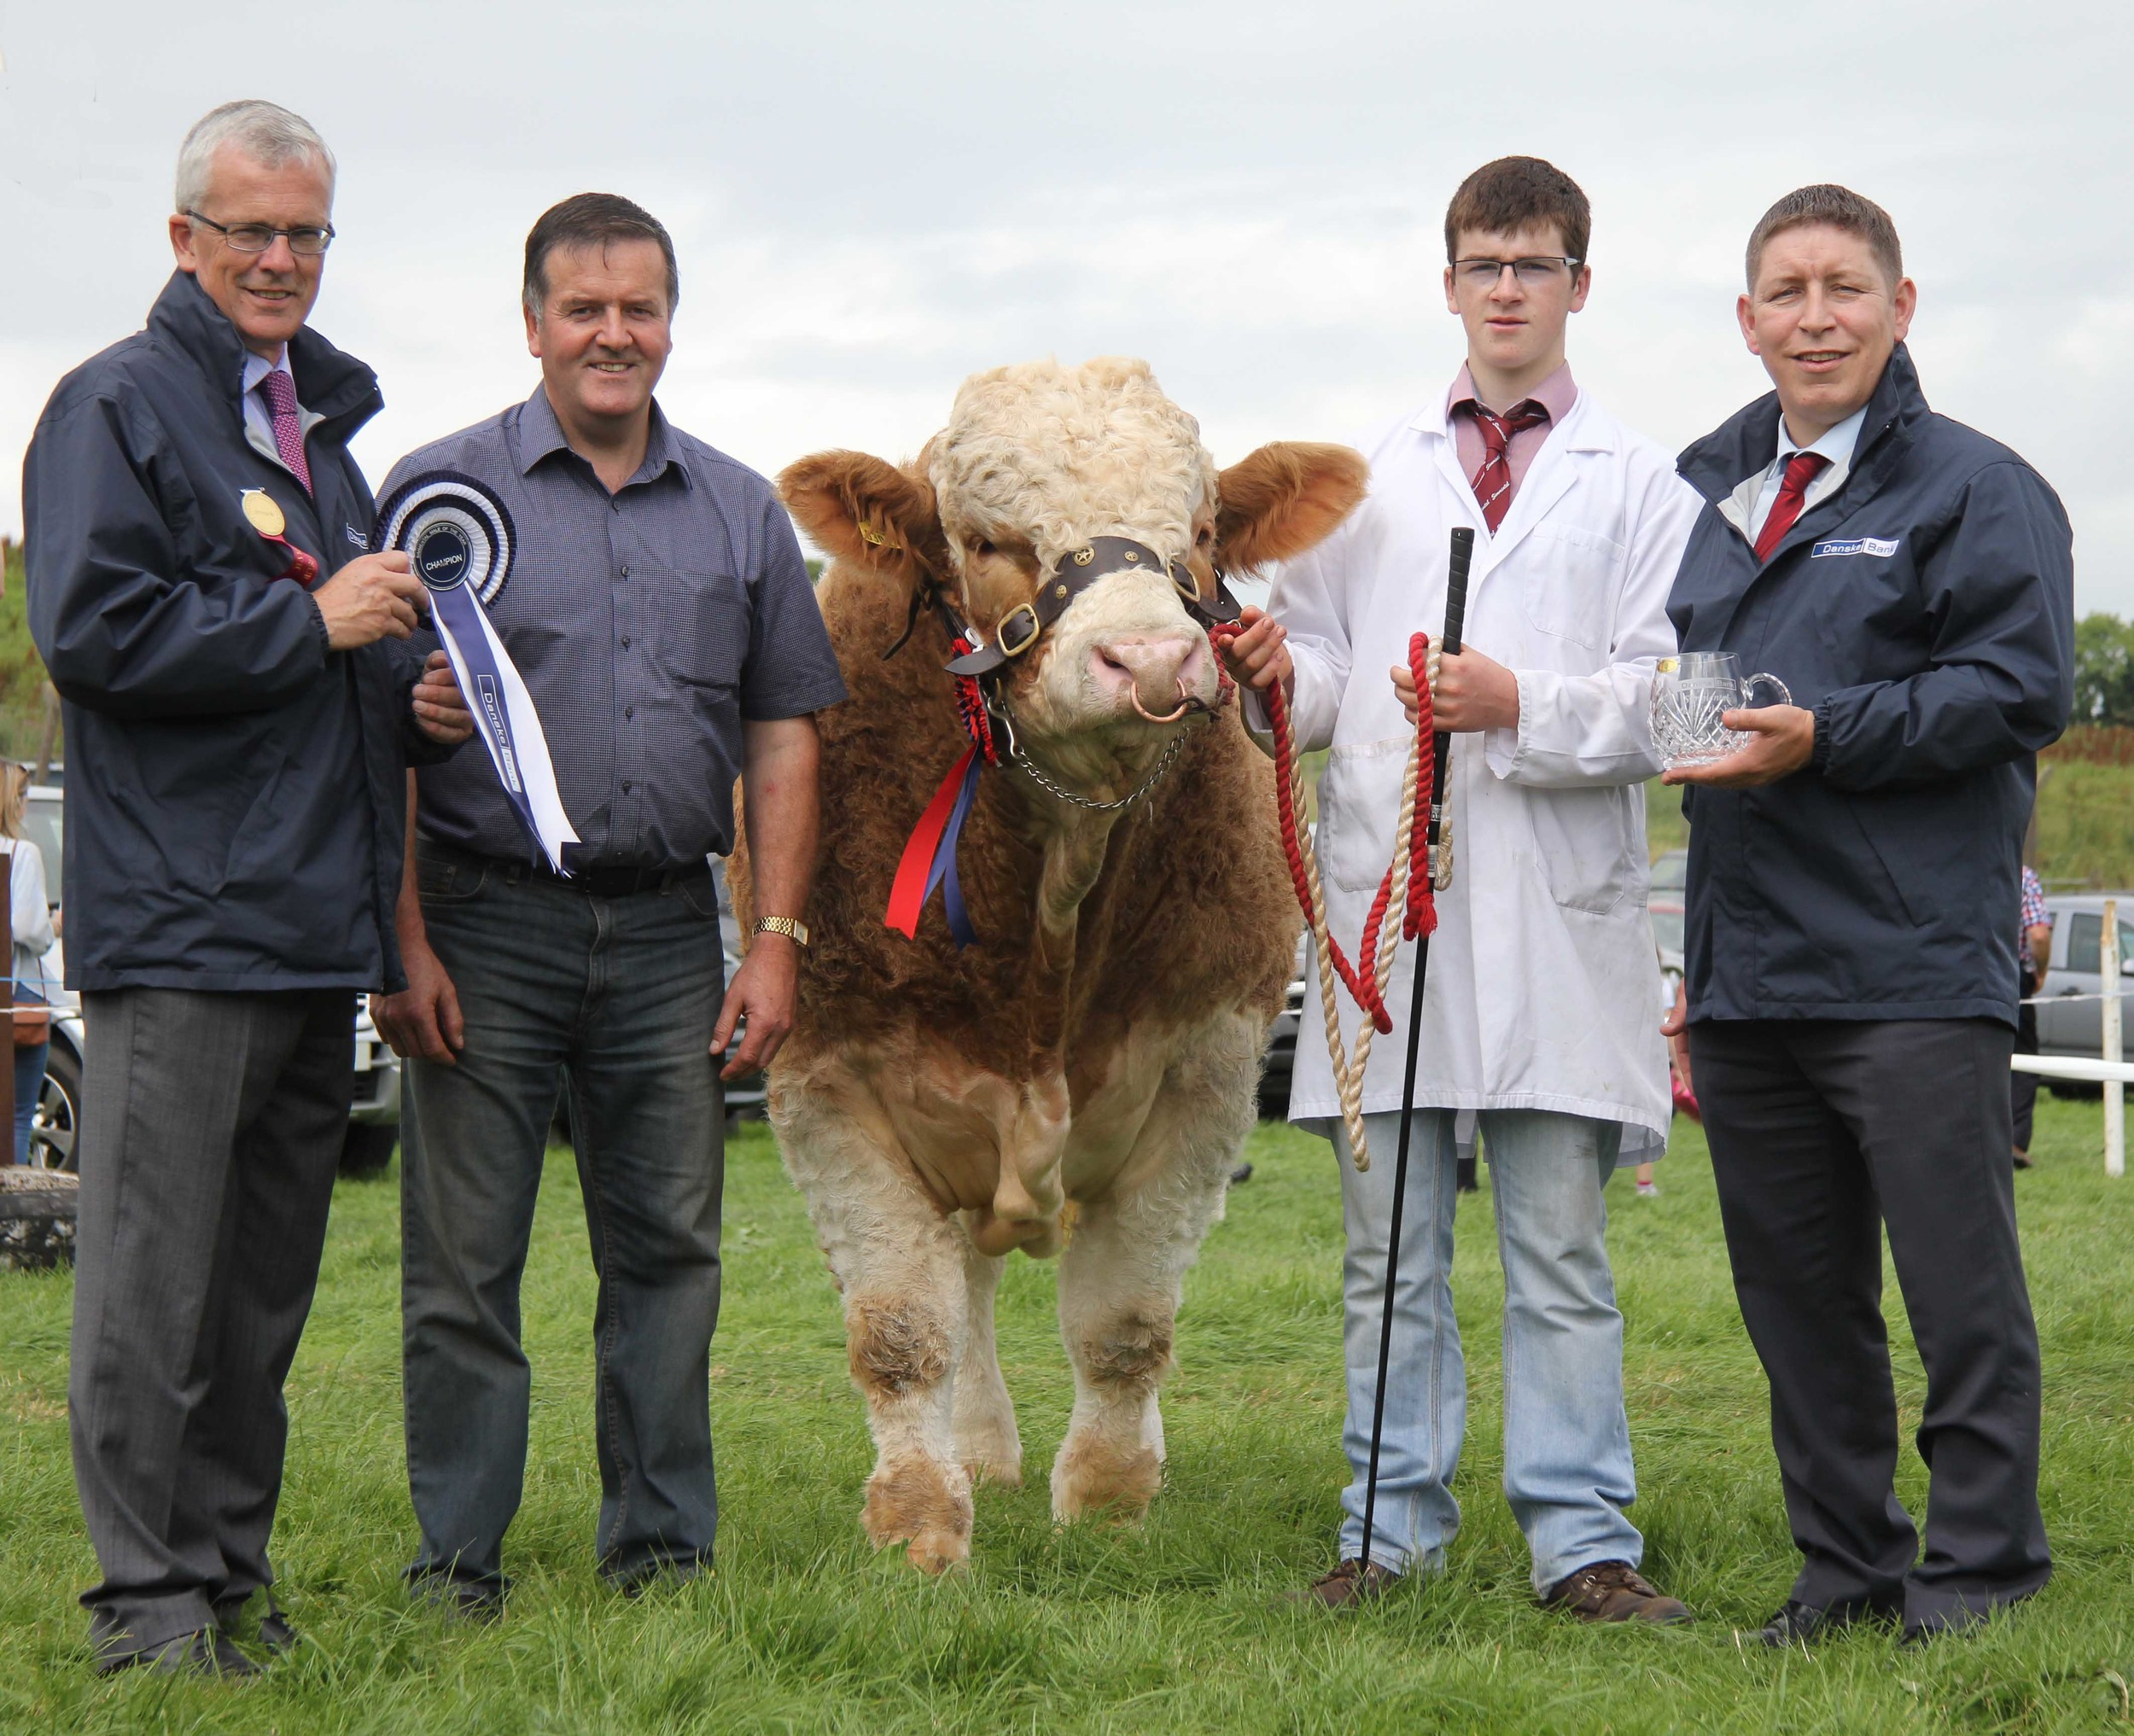 The Danske Bank Simmental Male of the Year award was won by Slievenagh Emperor bred by Robin Boyd, Portglenone, and shown by son Jamie. Making the presentation are sponsors John Henning and Rodney Brown, Danske Bank.